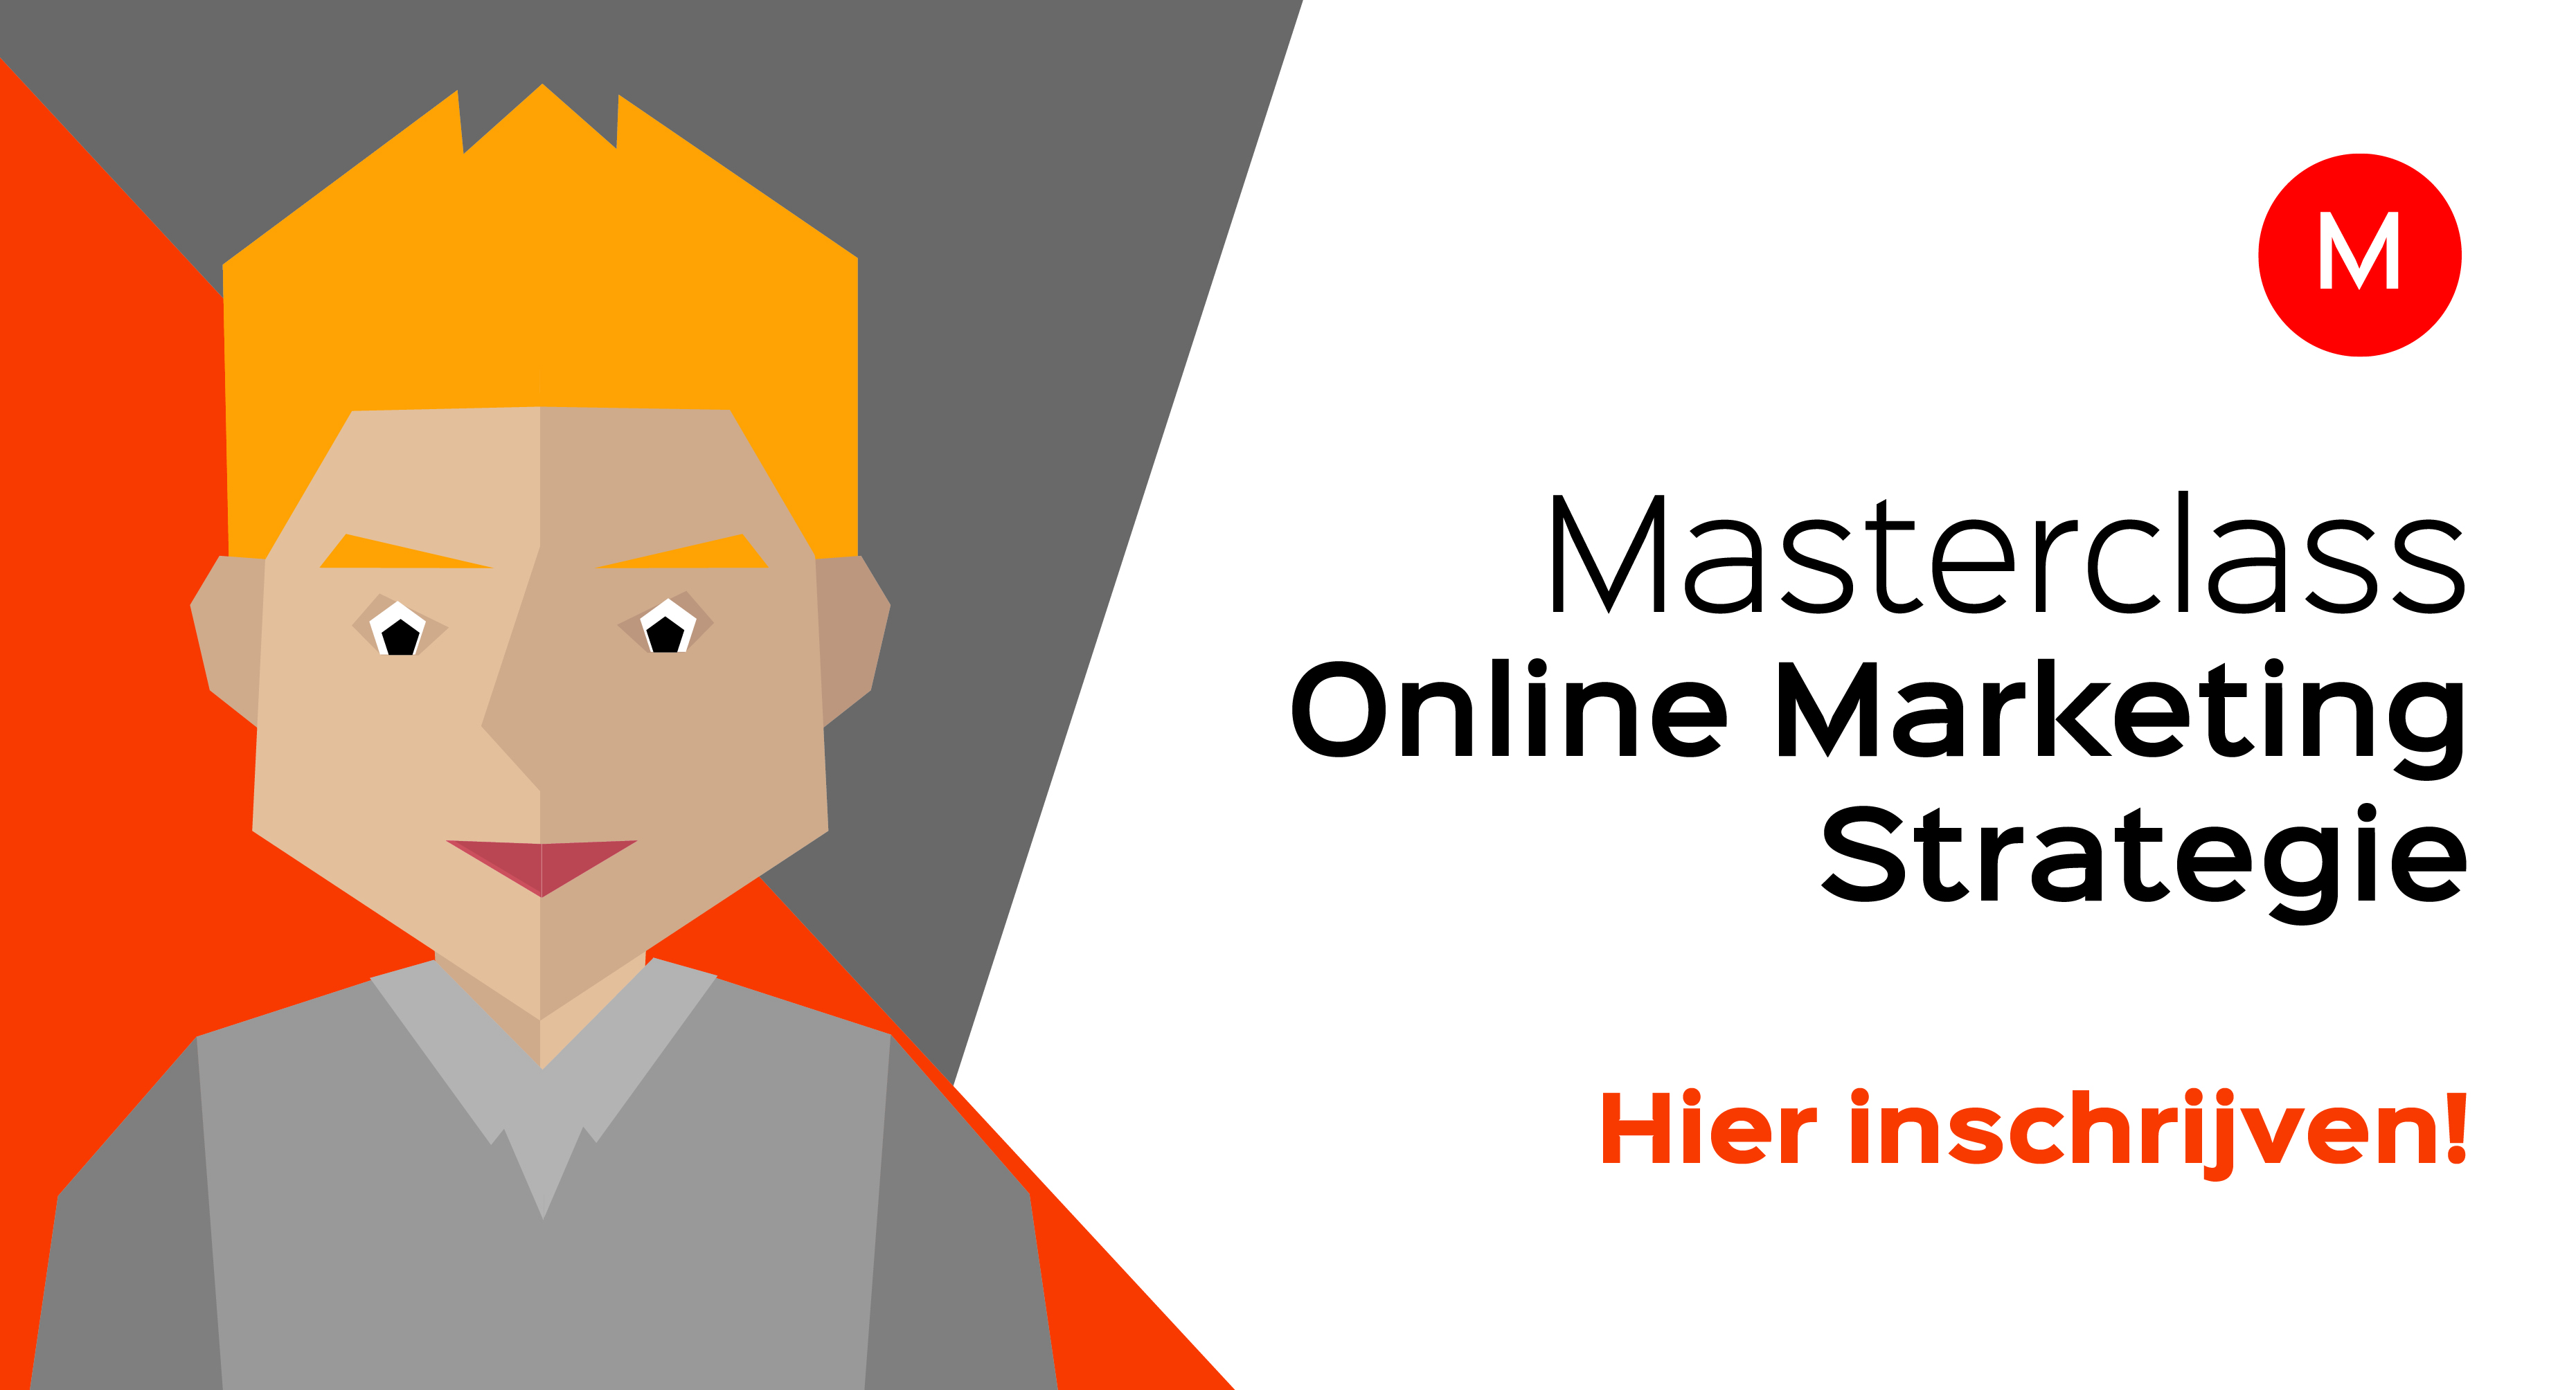 Online marketing strategie masterclass